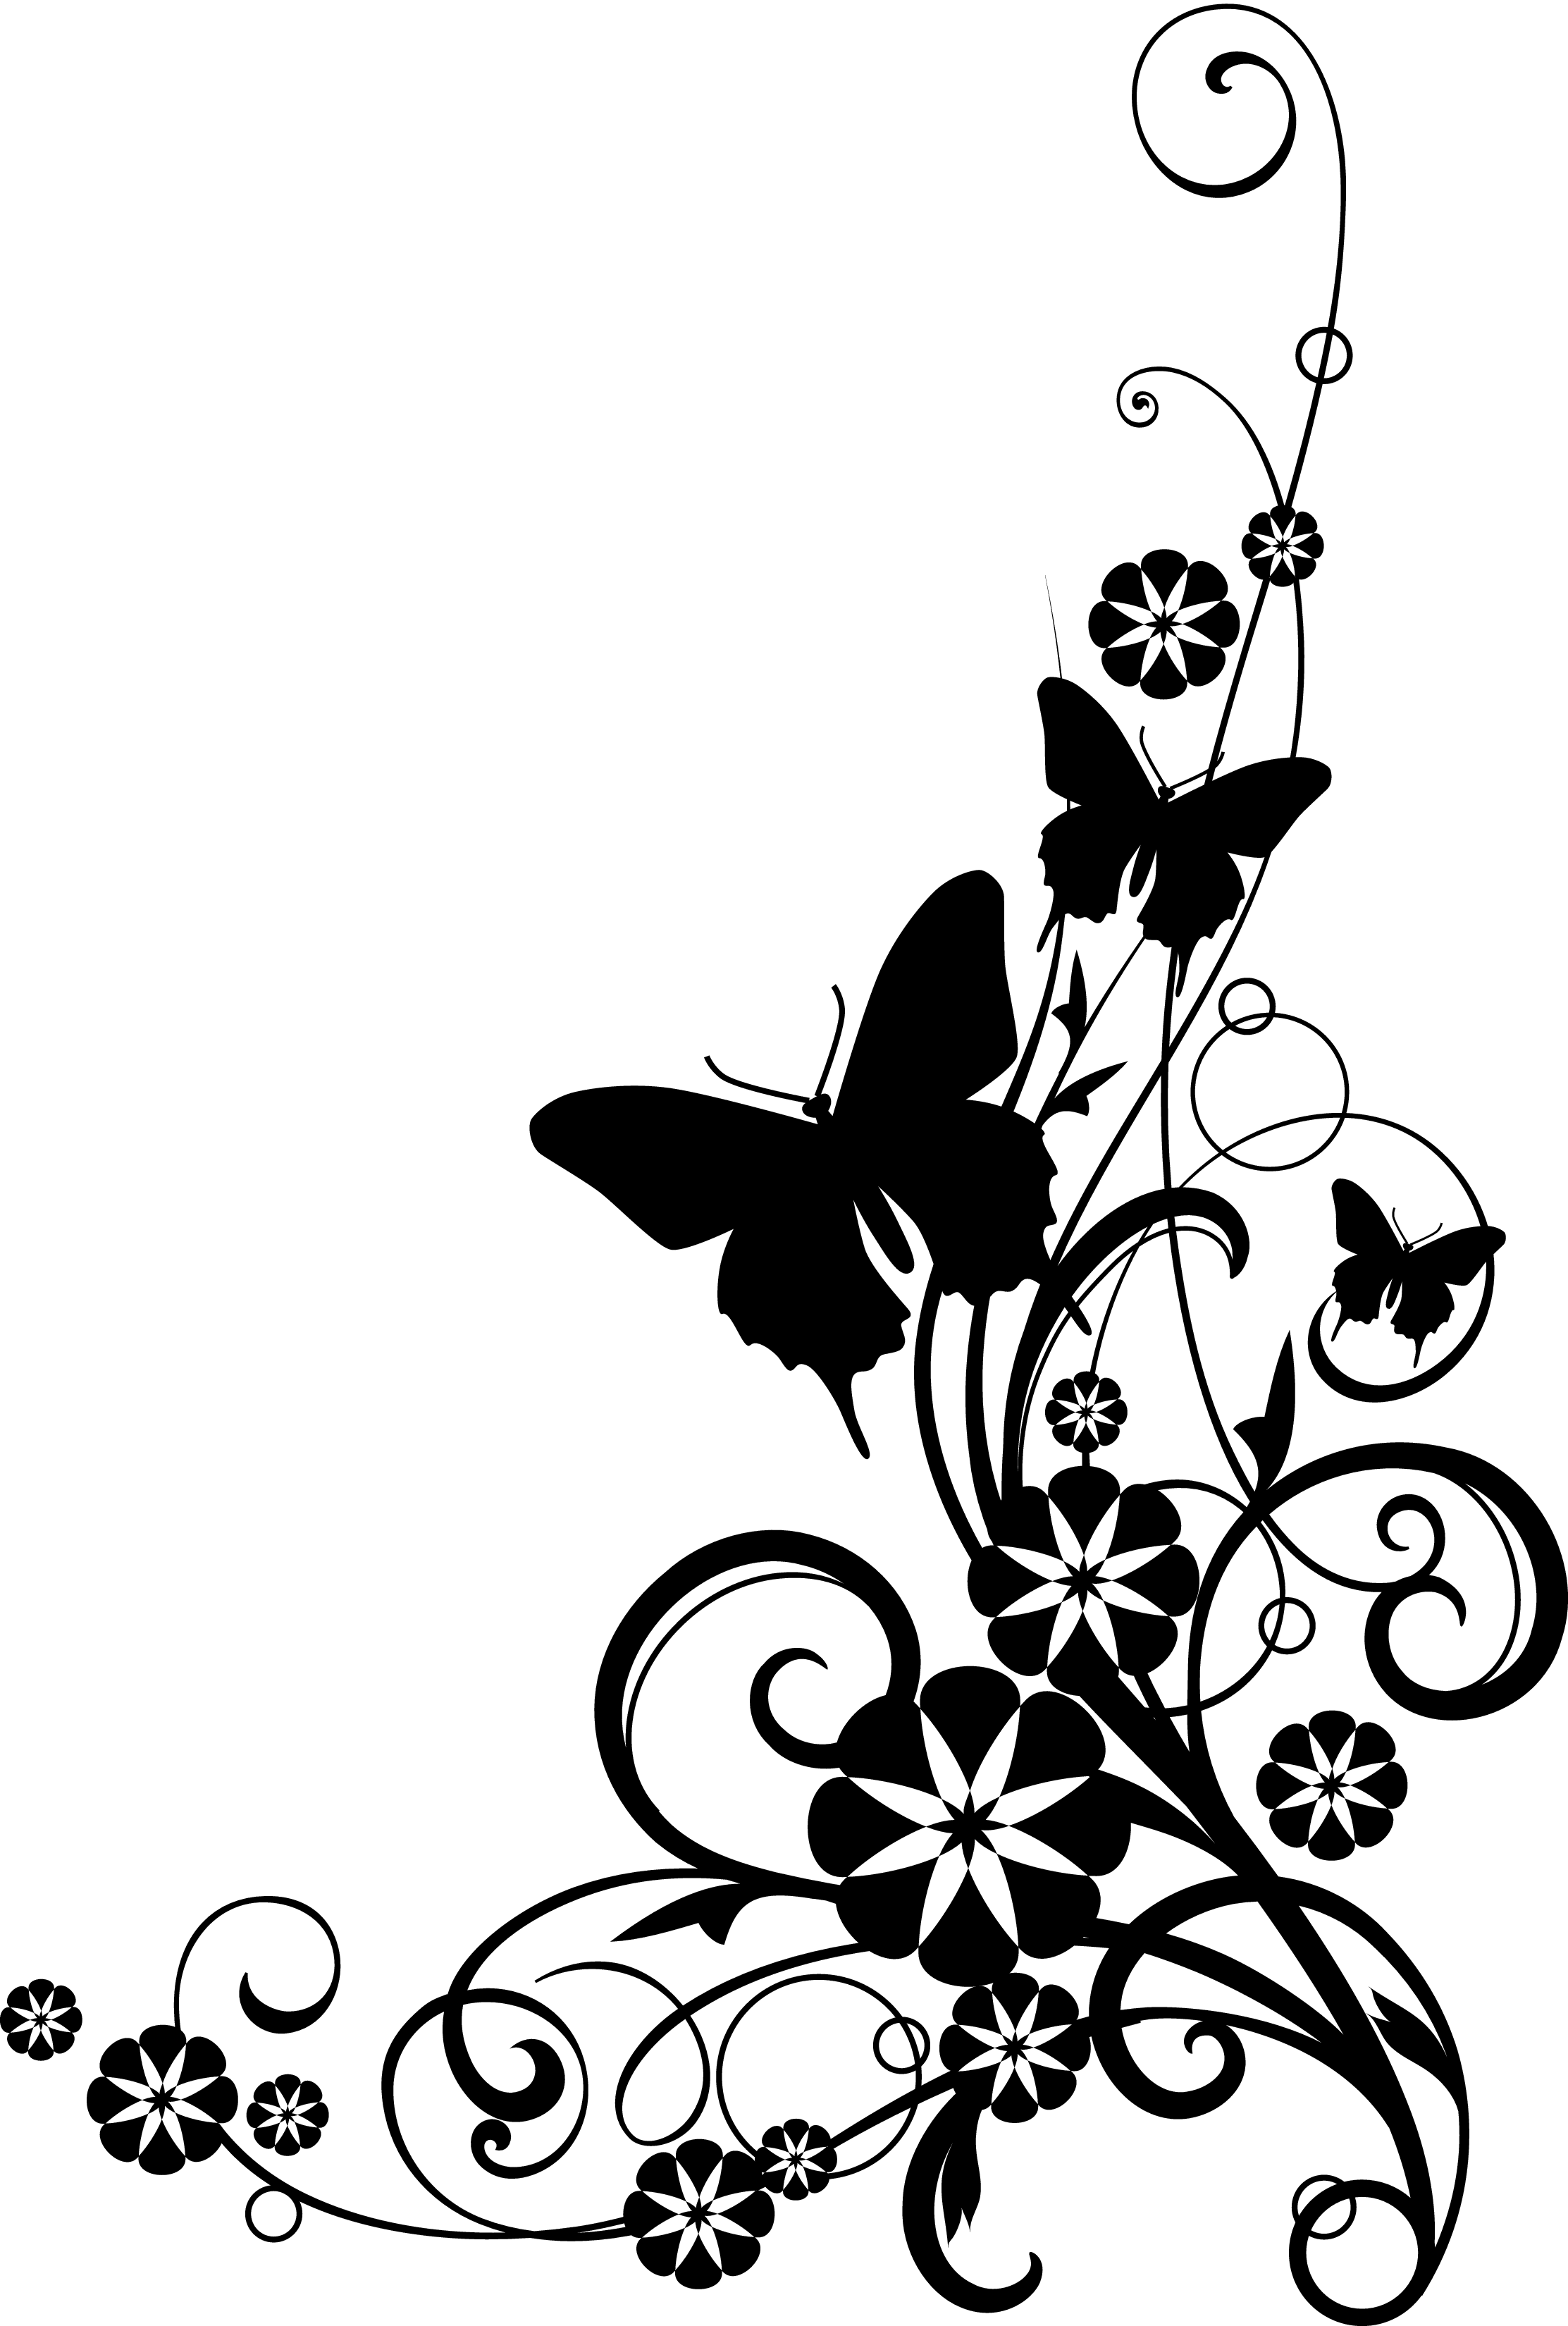 Wildflower sketch black and. Windy clipart swirl